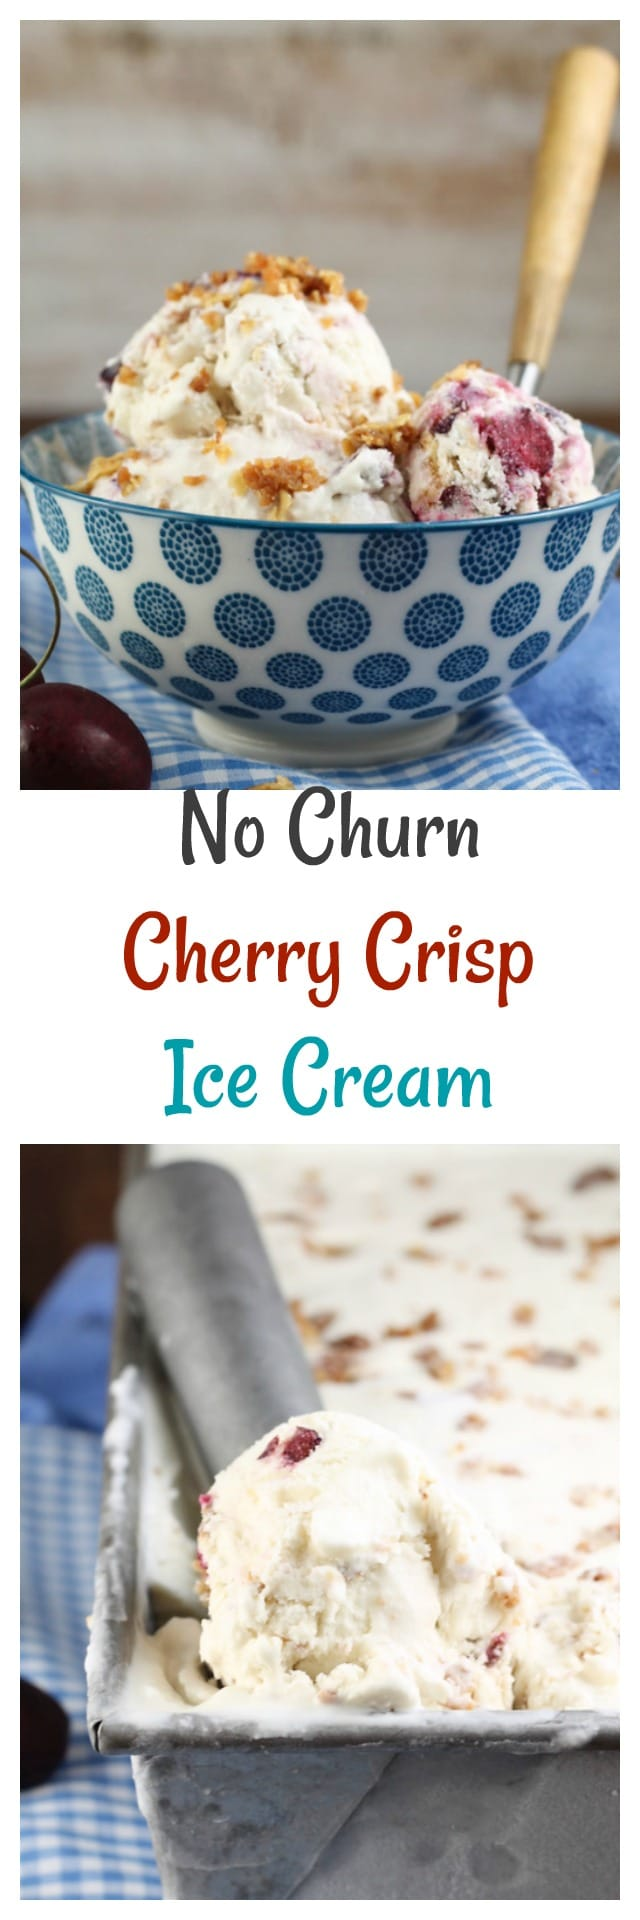 No Churn Cherry Crisp Ice Cream for #SummerDessertWeek from MissintheKitchen.com